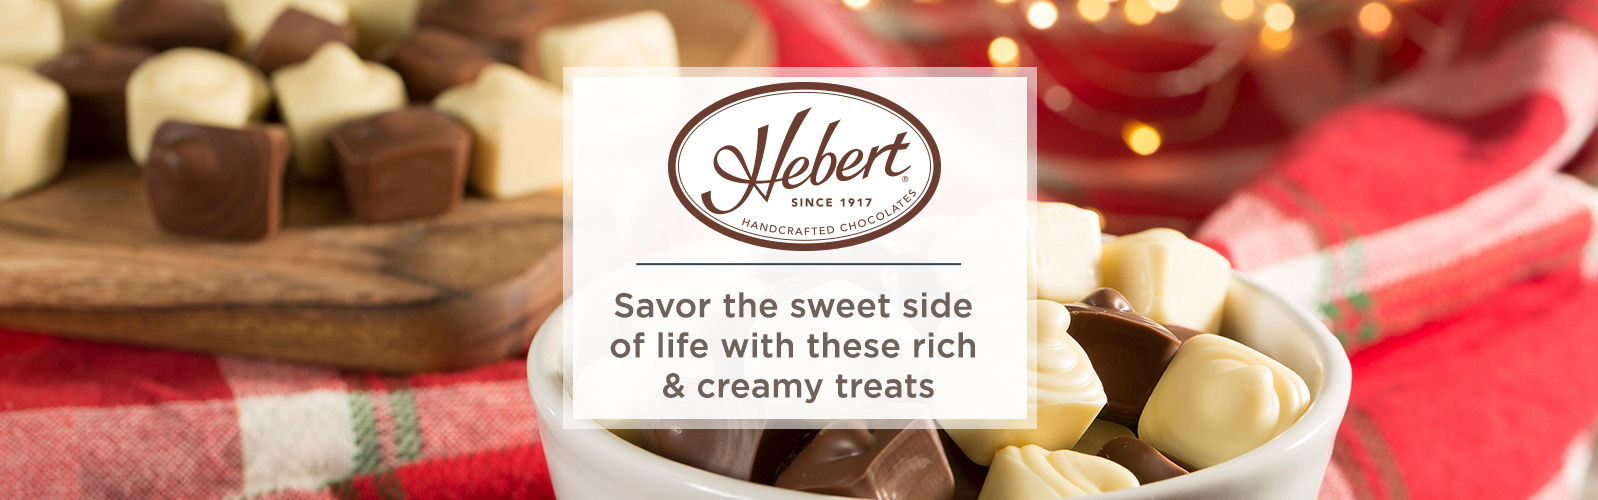 Herbert Handcrafted Chocolate - Savor the sweet side of life with these rich & creamy treats